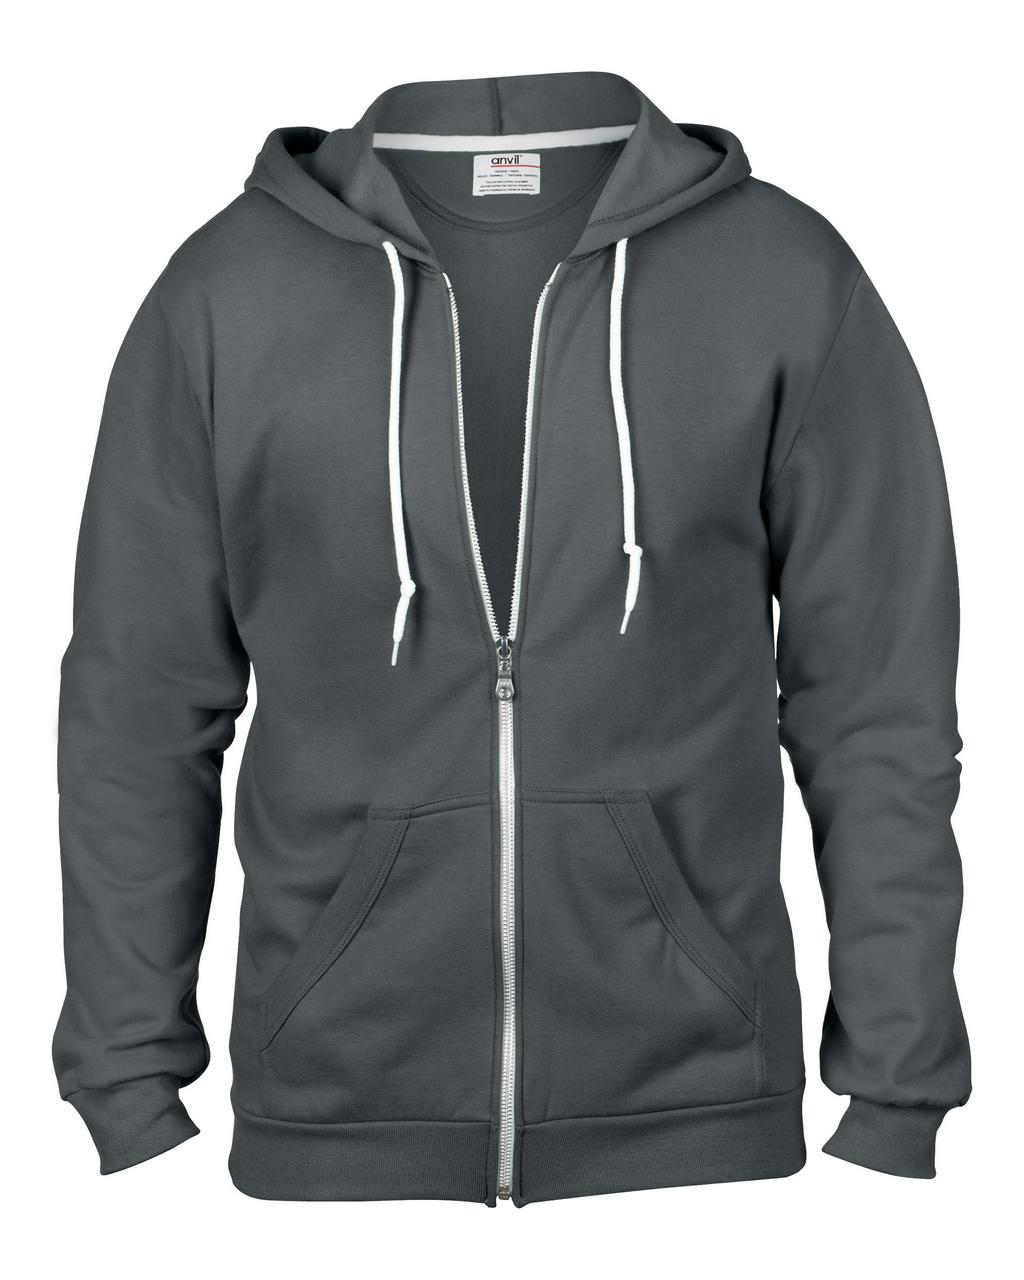 Majica, DR, Anvil Hooded, Charcoal , XL